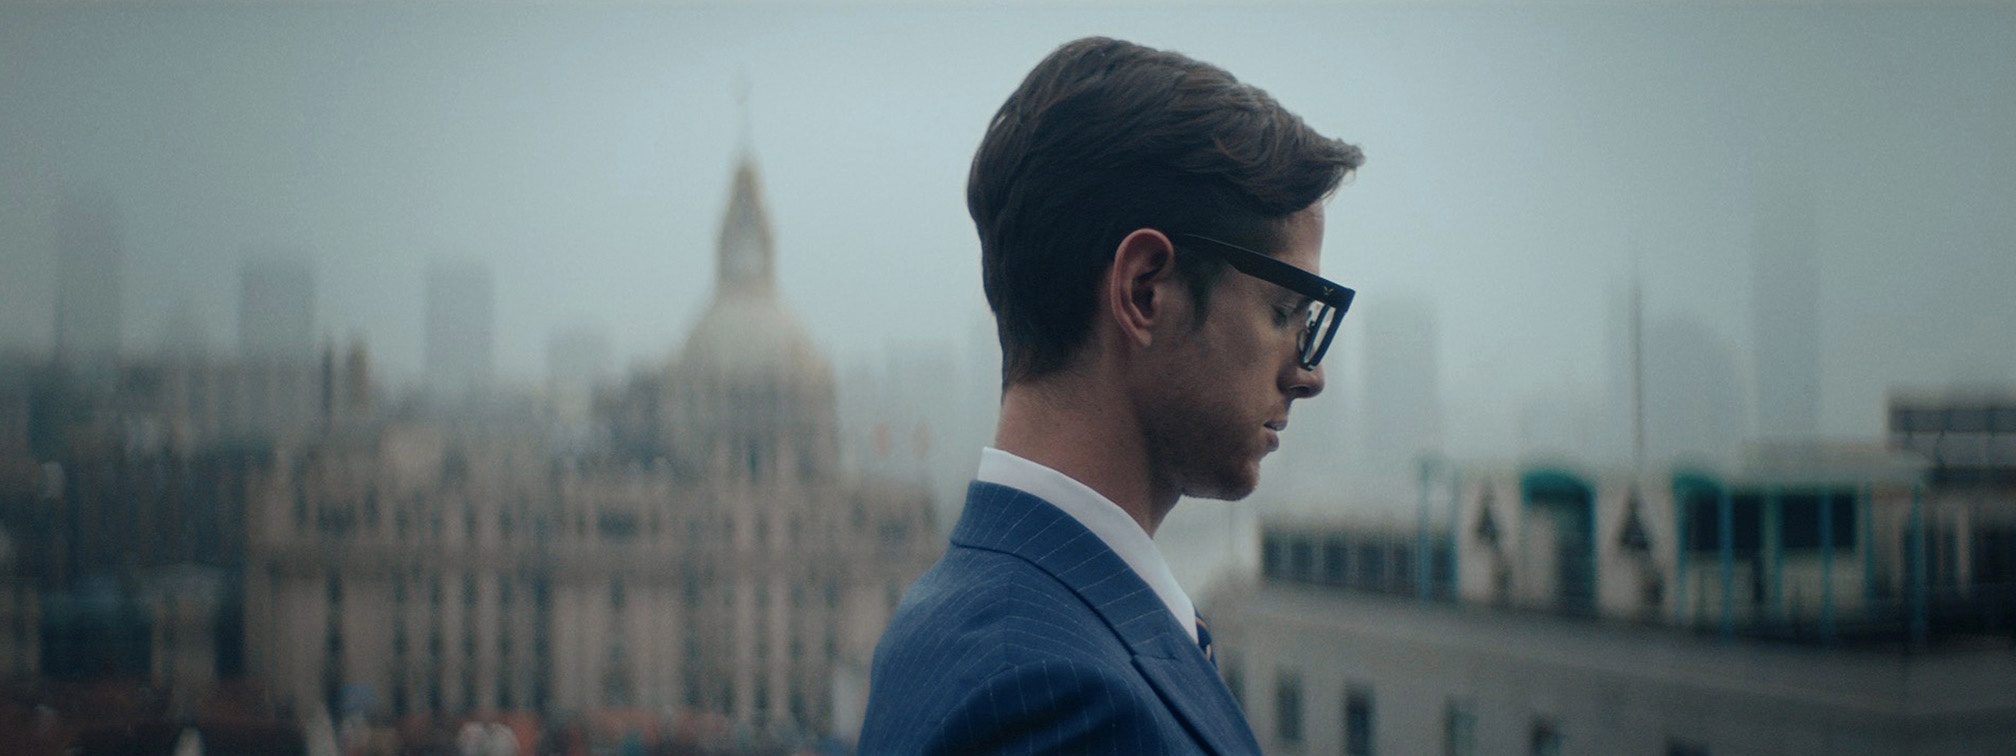 The Nine Shanghai's Jody Xiong directs this Enjoy Seamlessness film for Skyworth S81 Pro TV